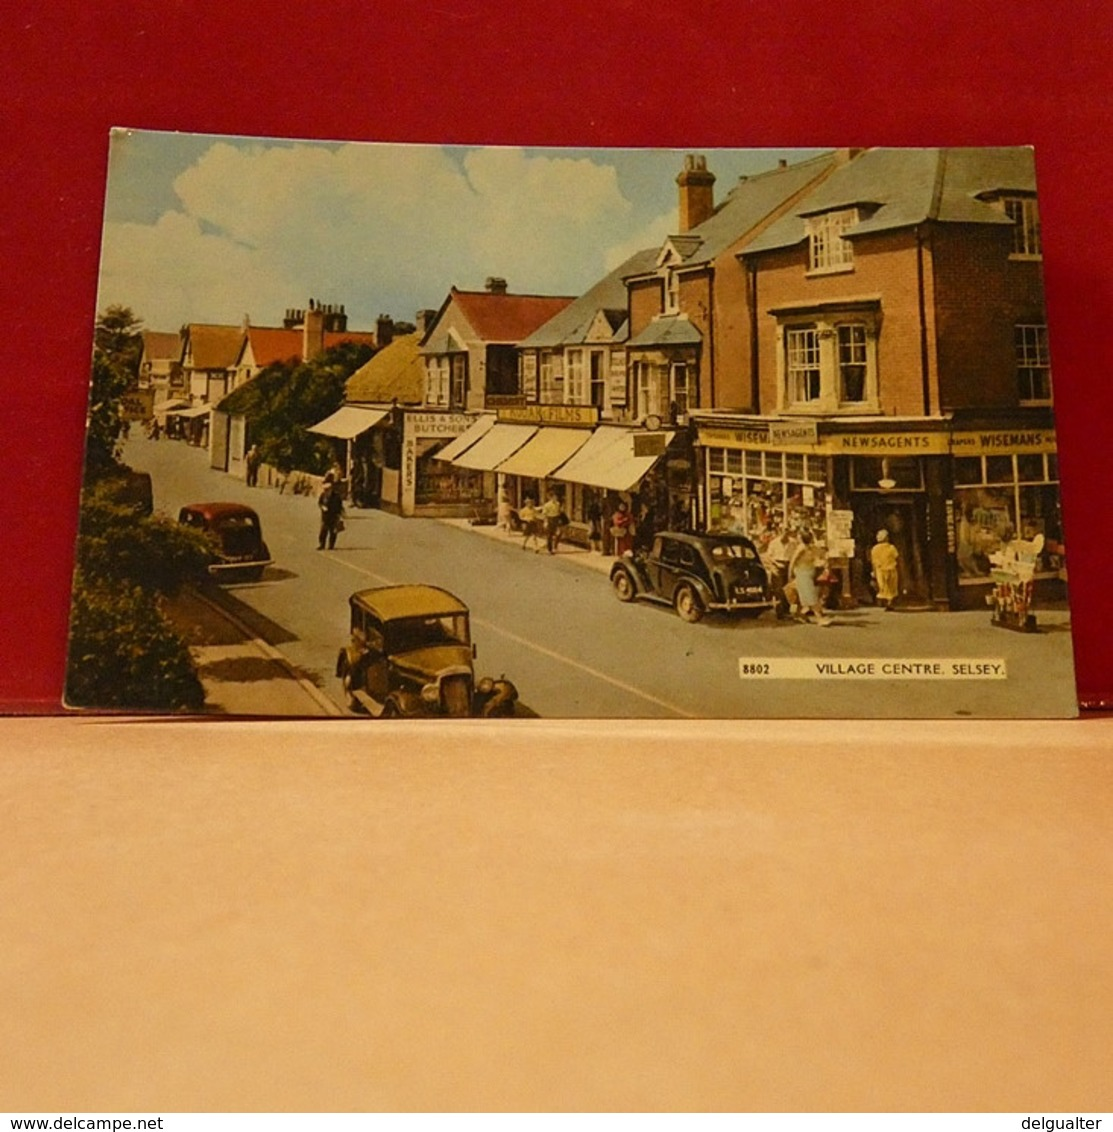 Village Centre - Selsey - Chichester